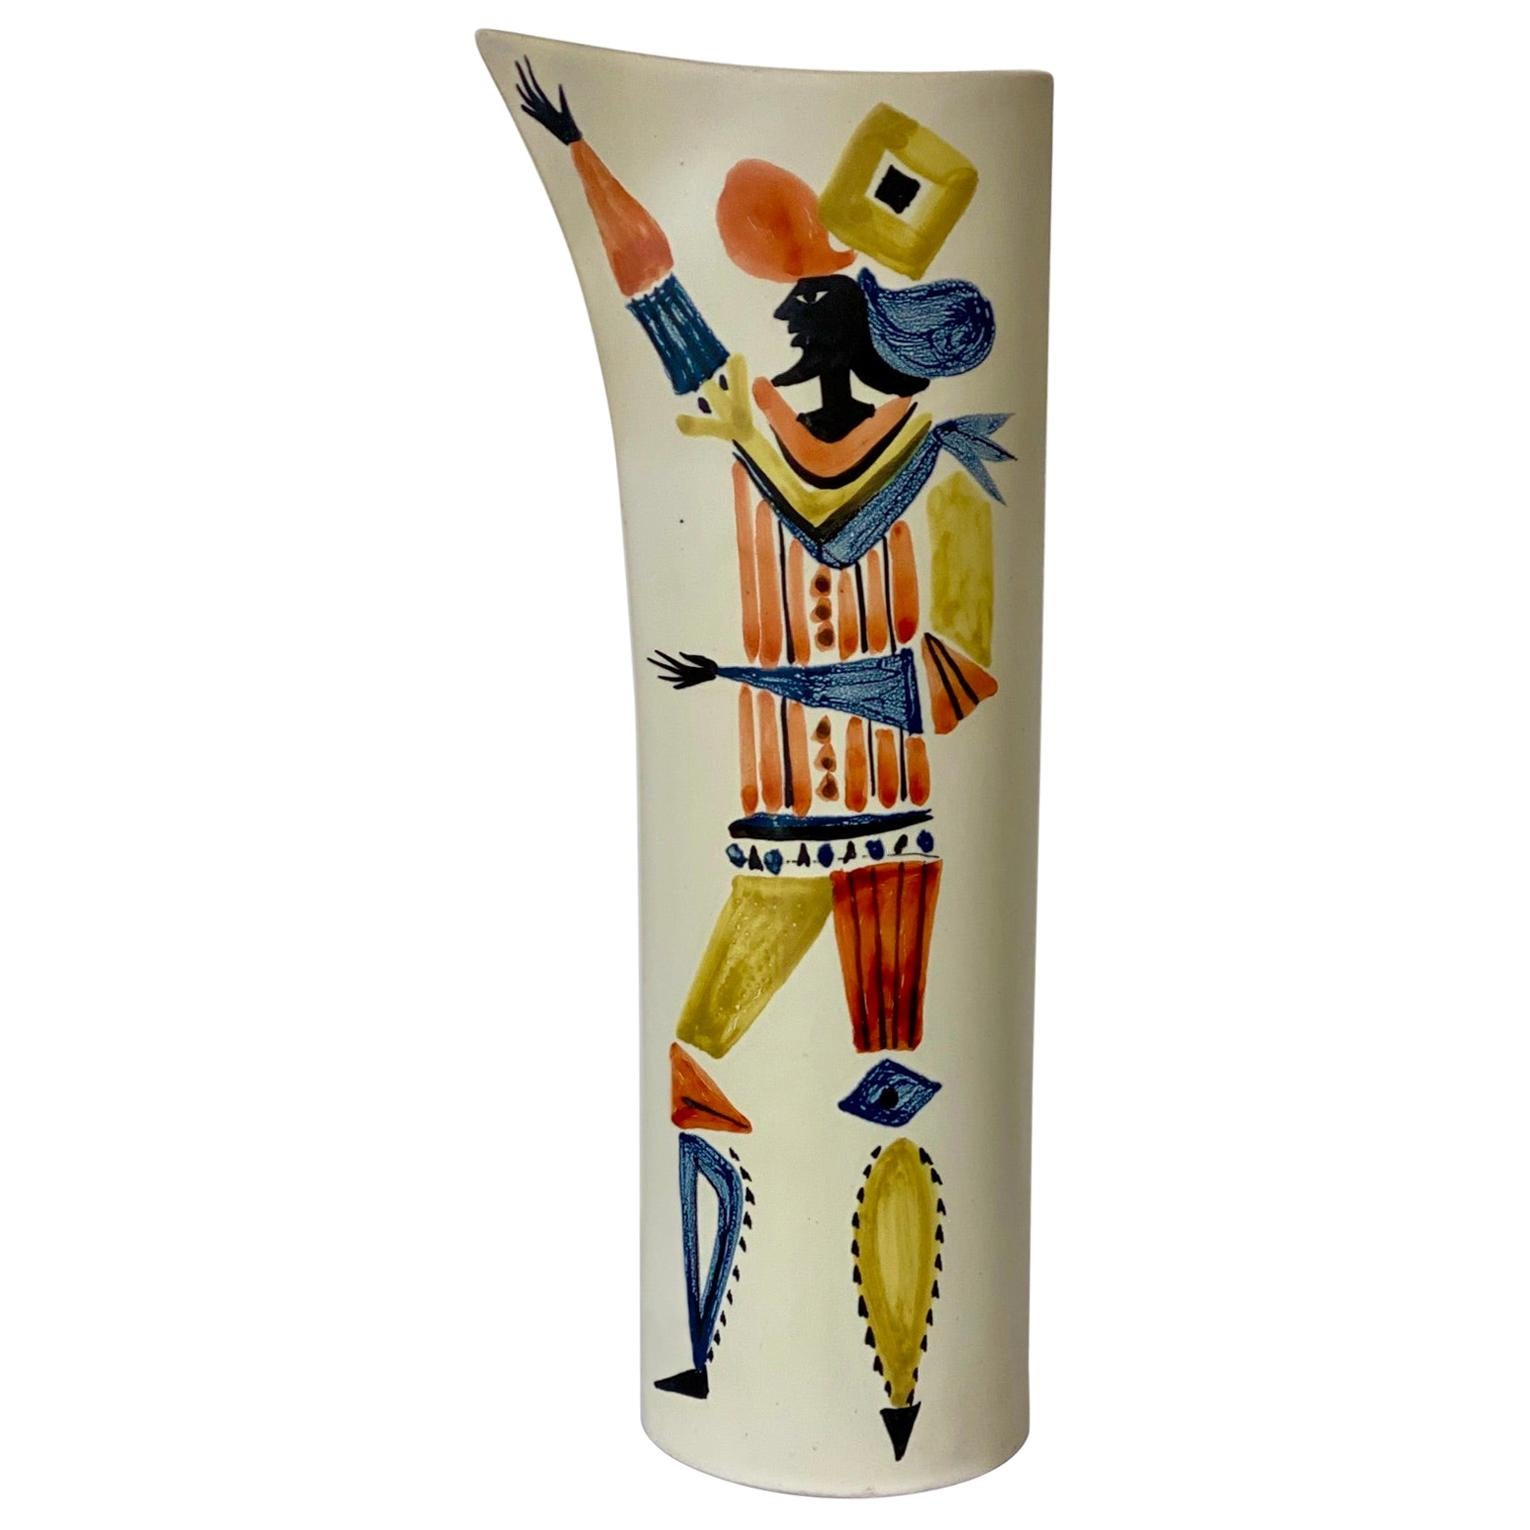 Ceramic Vase Pitcher with Character Signed by Roger Capron, Vallauris, 1950s